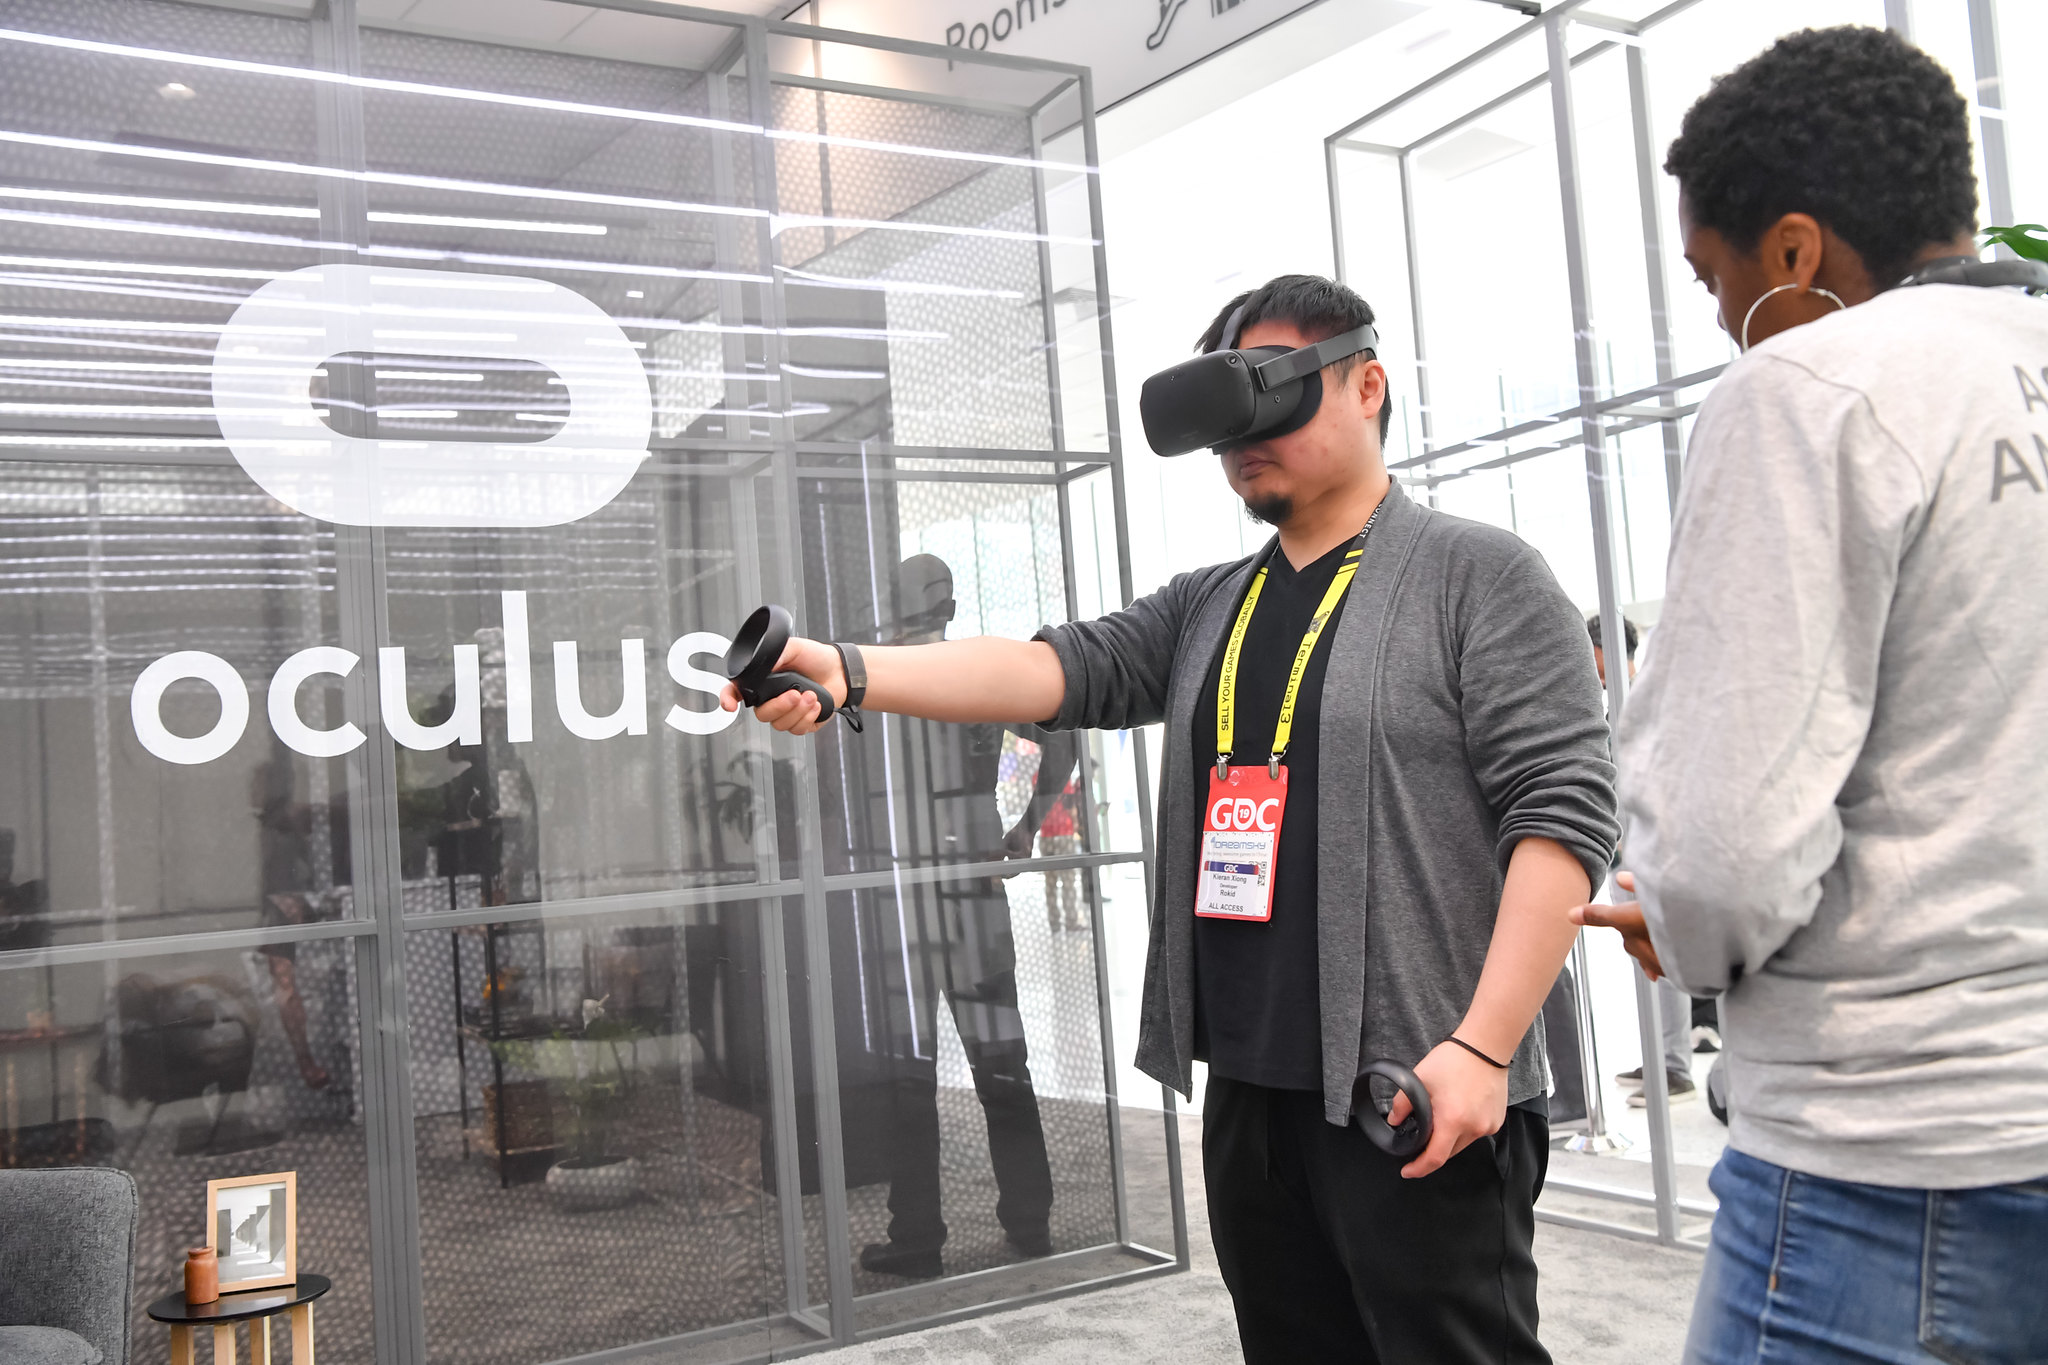 A GDC attendee uses an Oculus VR headset at the Game Developers Conference 2019